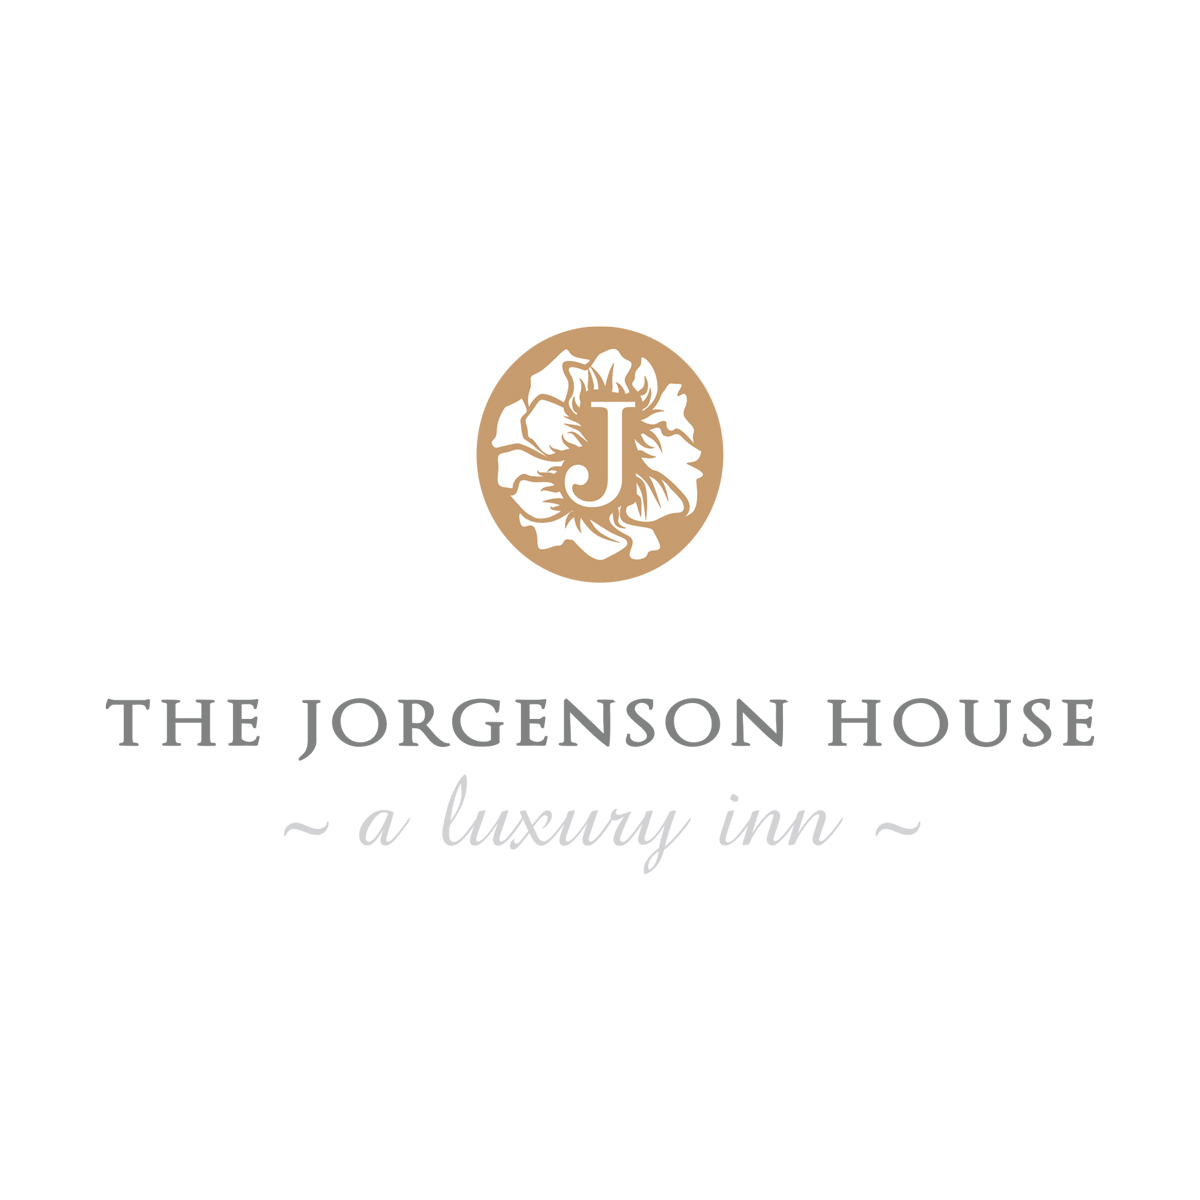 The Jorgenson House